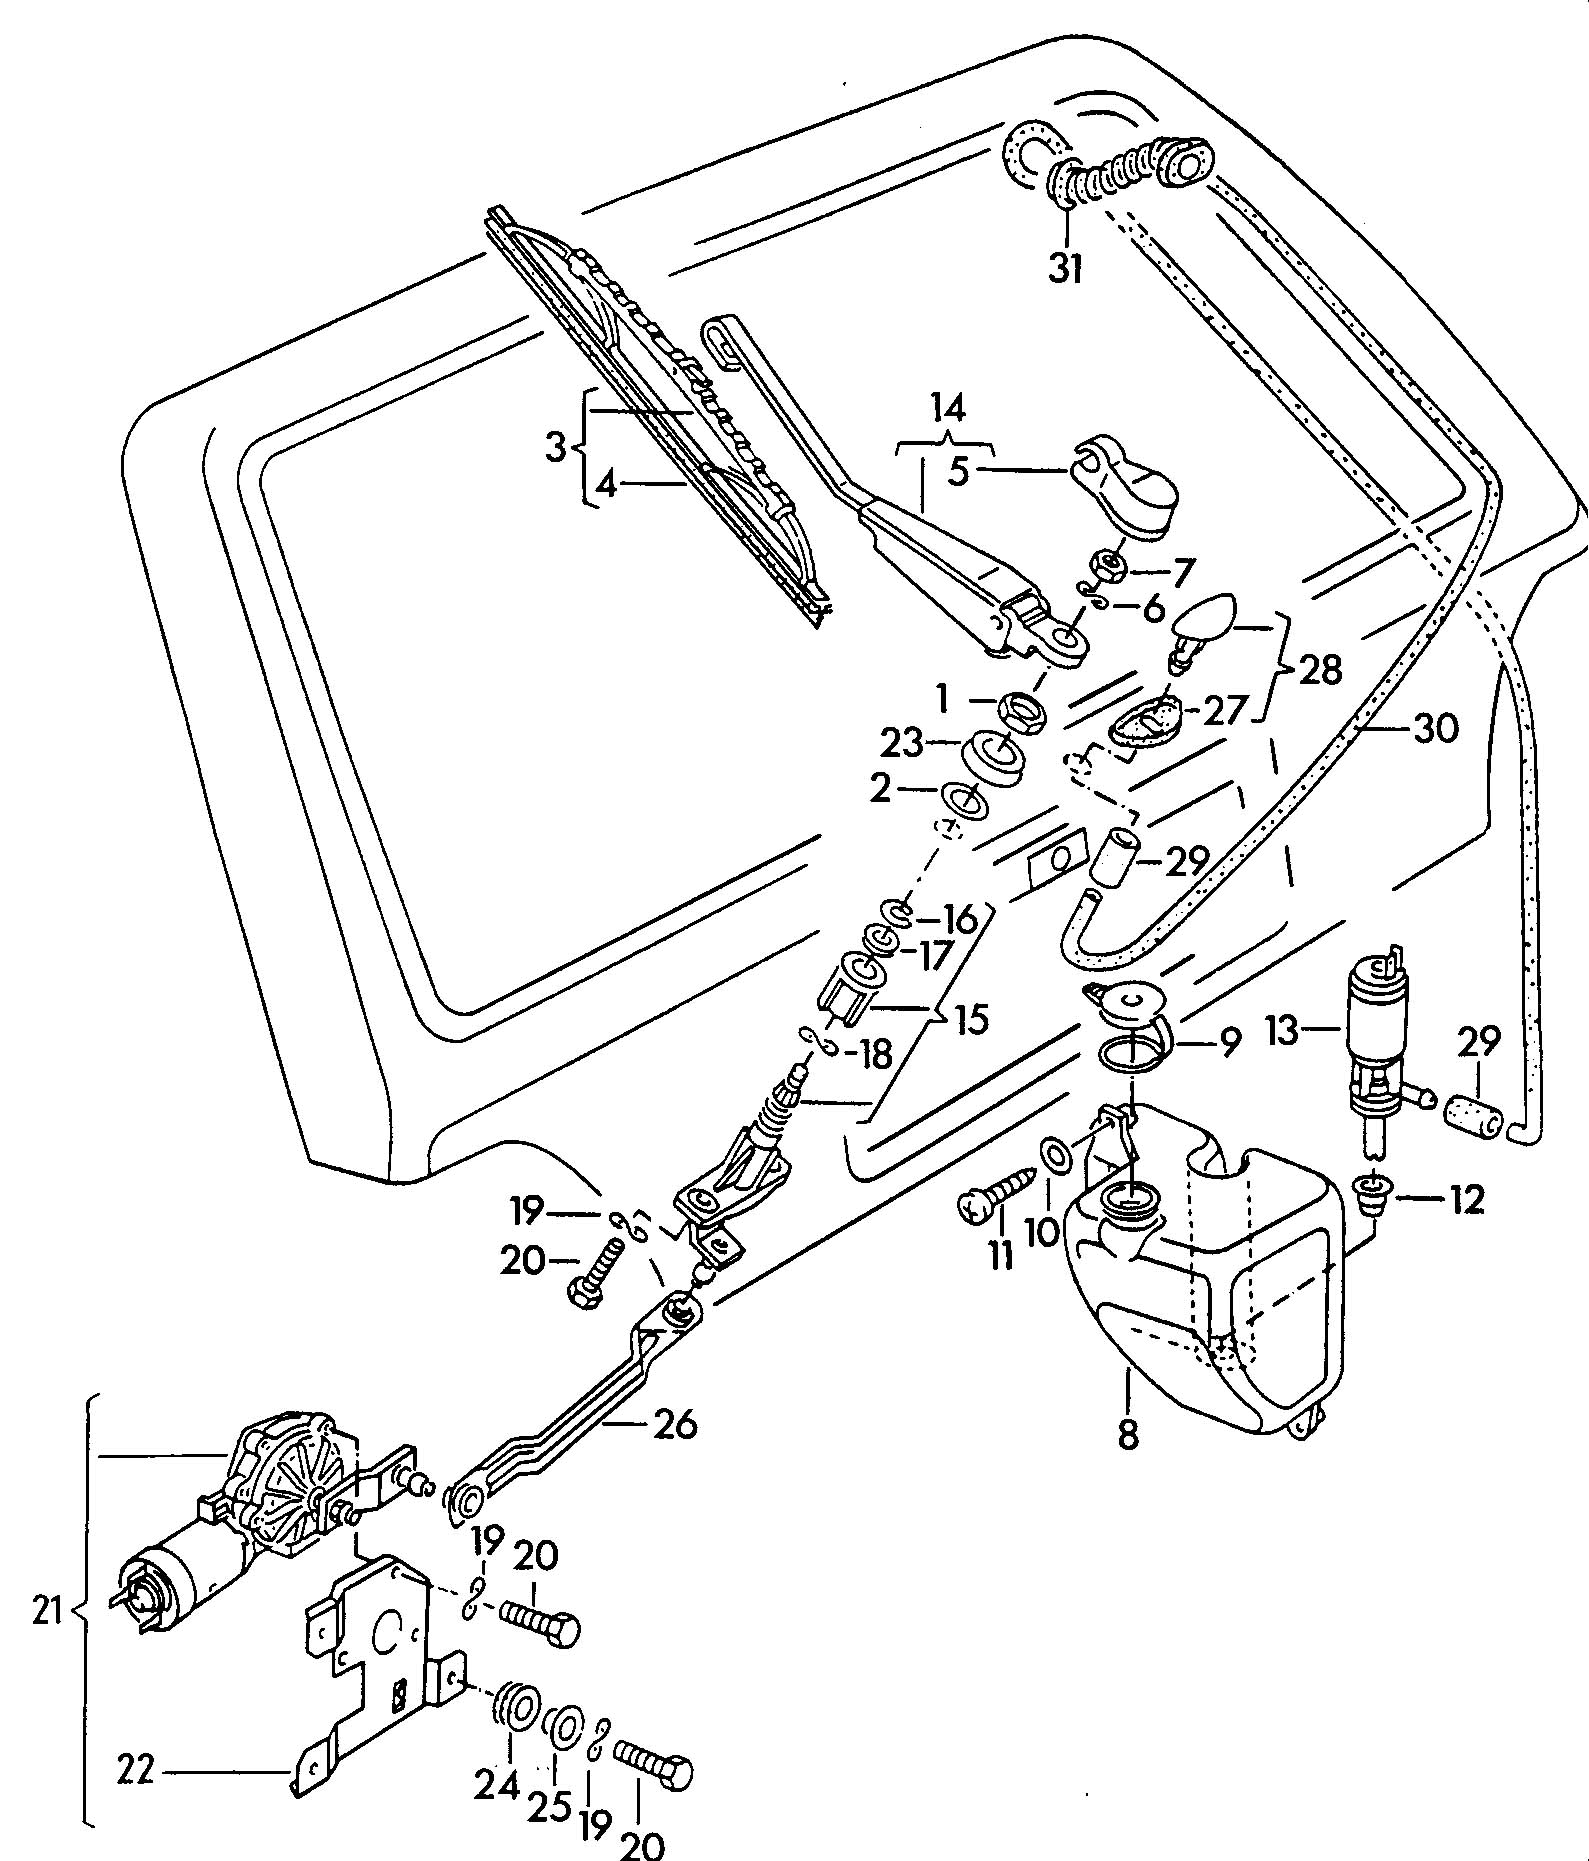 1985 Volkswagen Golf Wiper and washer system for rear window